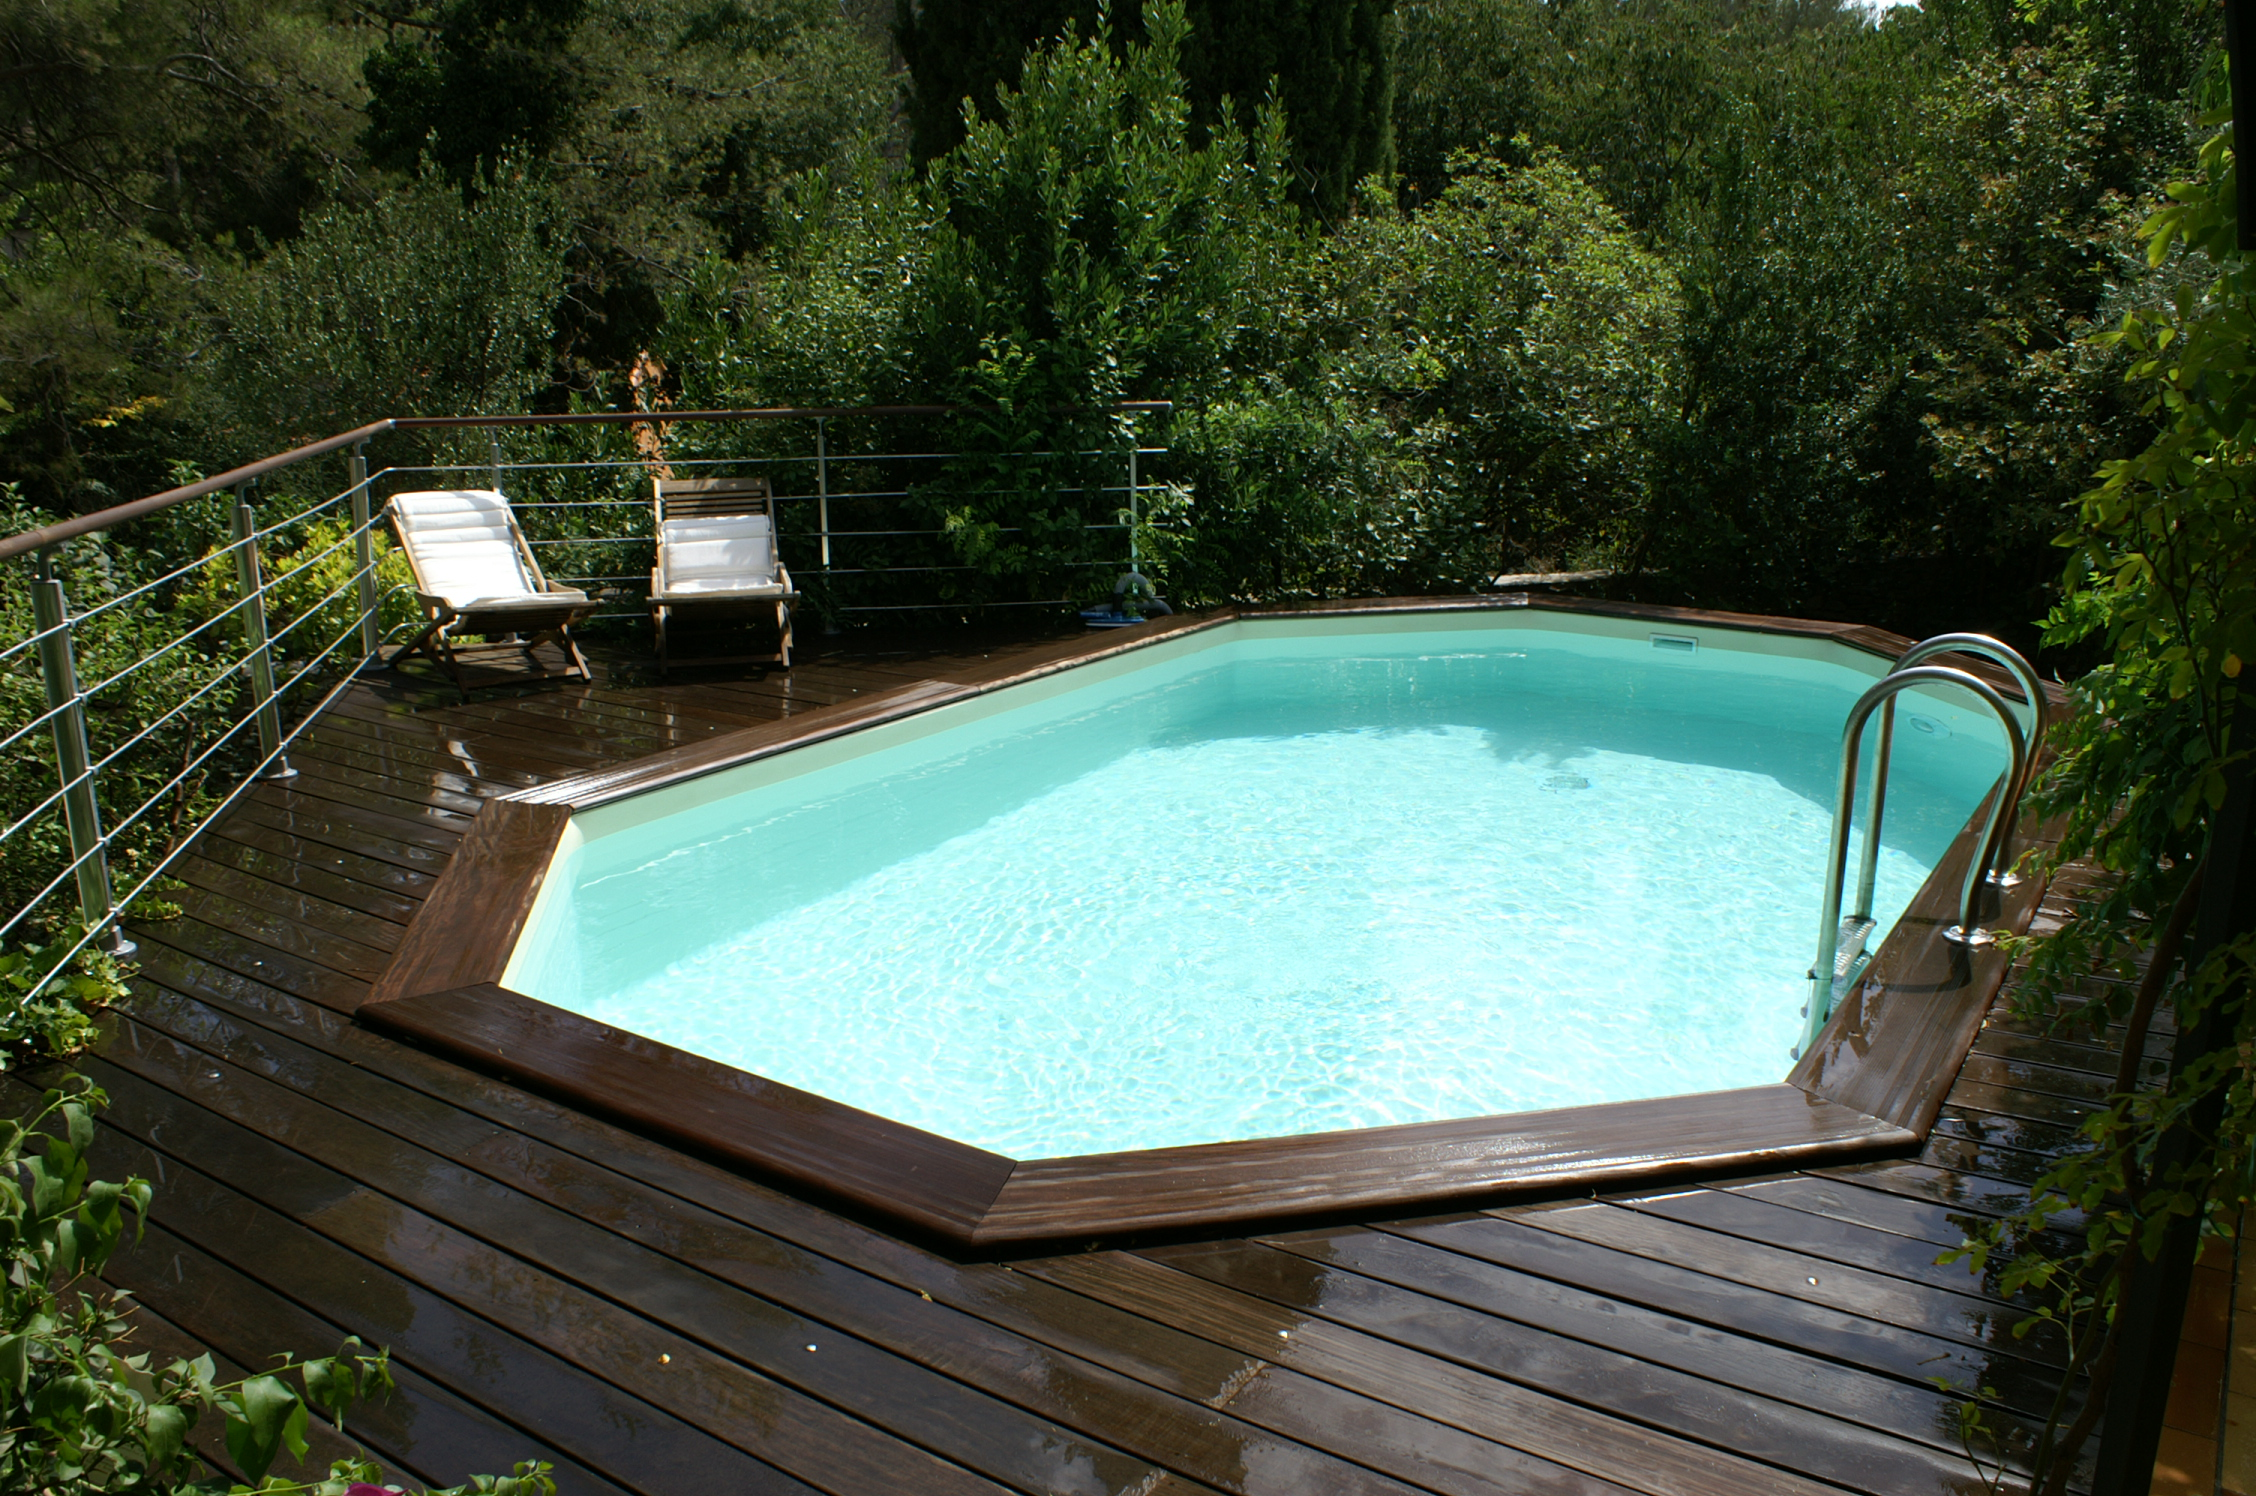 Construction piscines nimes gepad piscines et spa 30000 for Refoulement piscine miroir